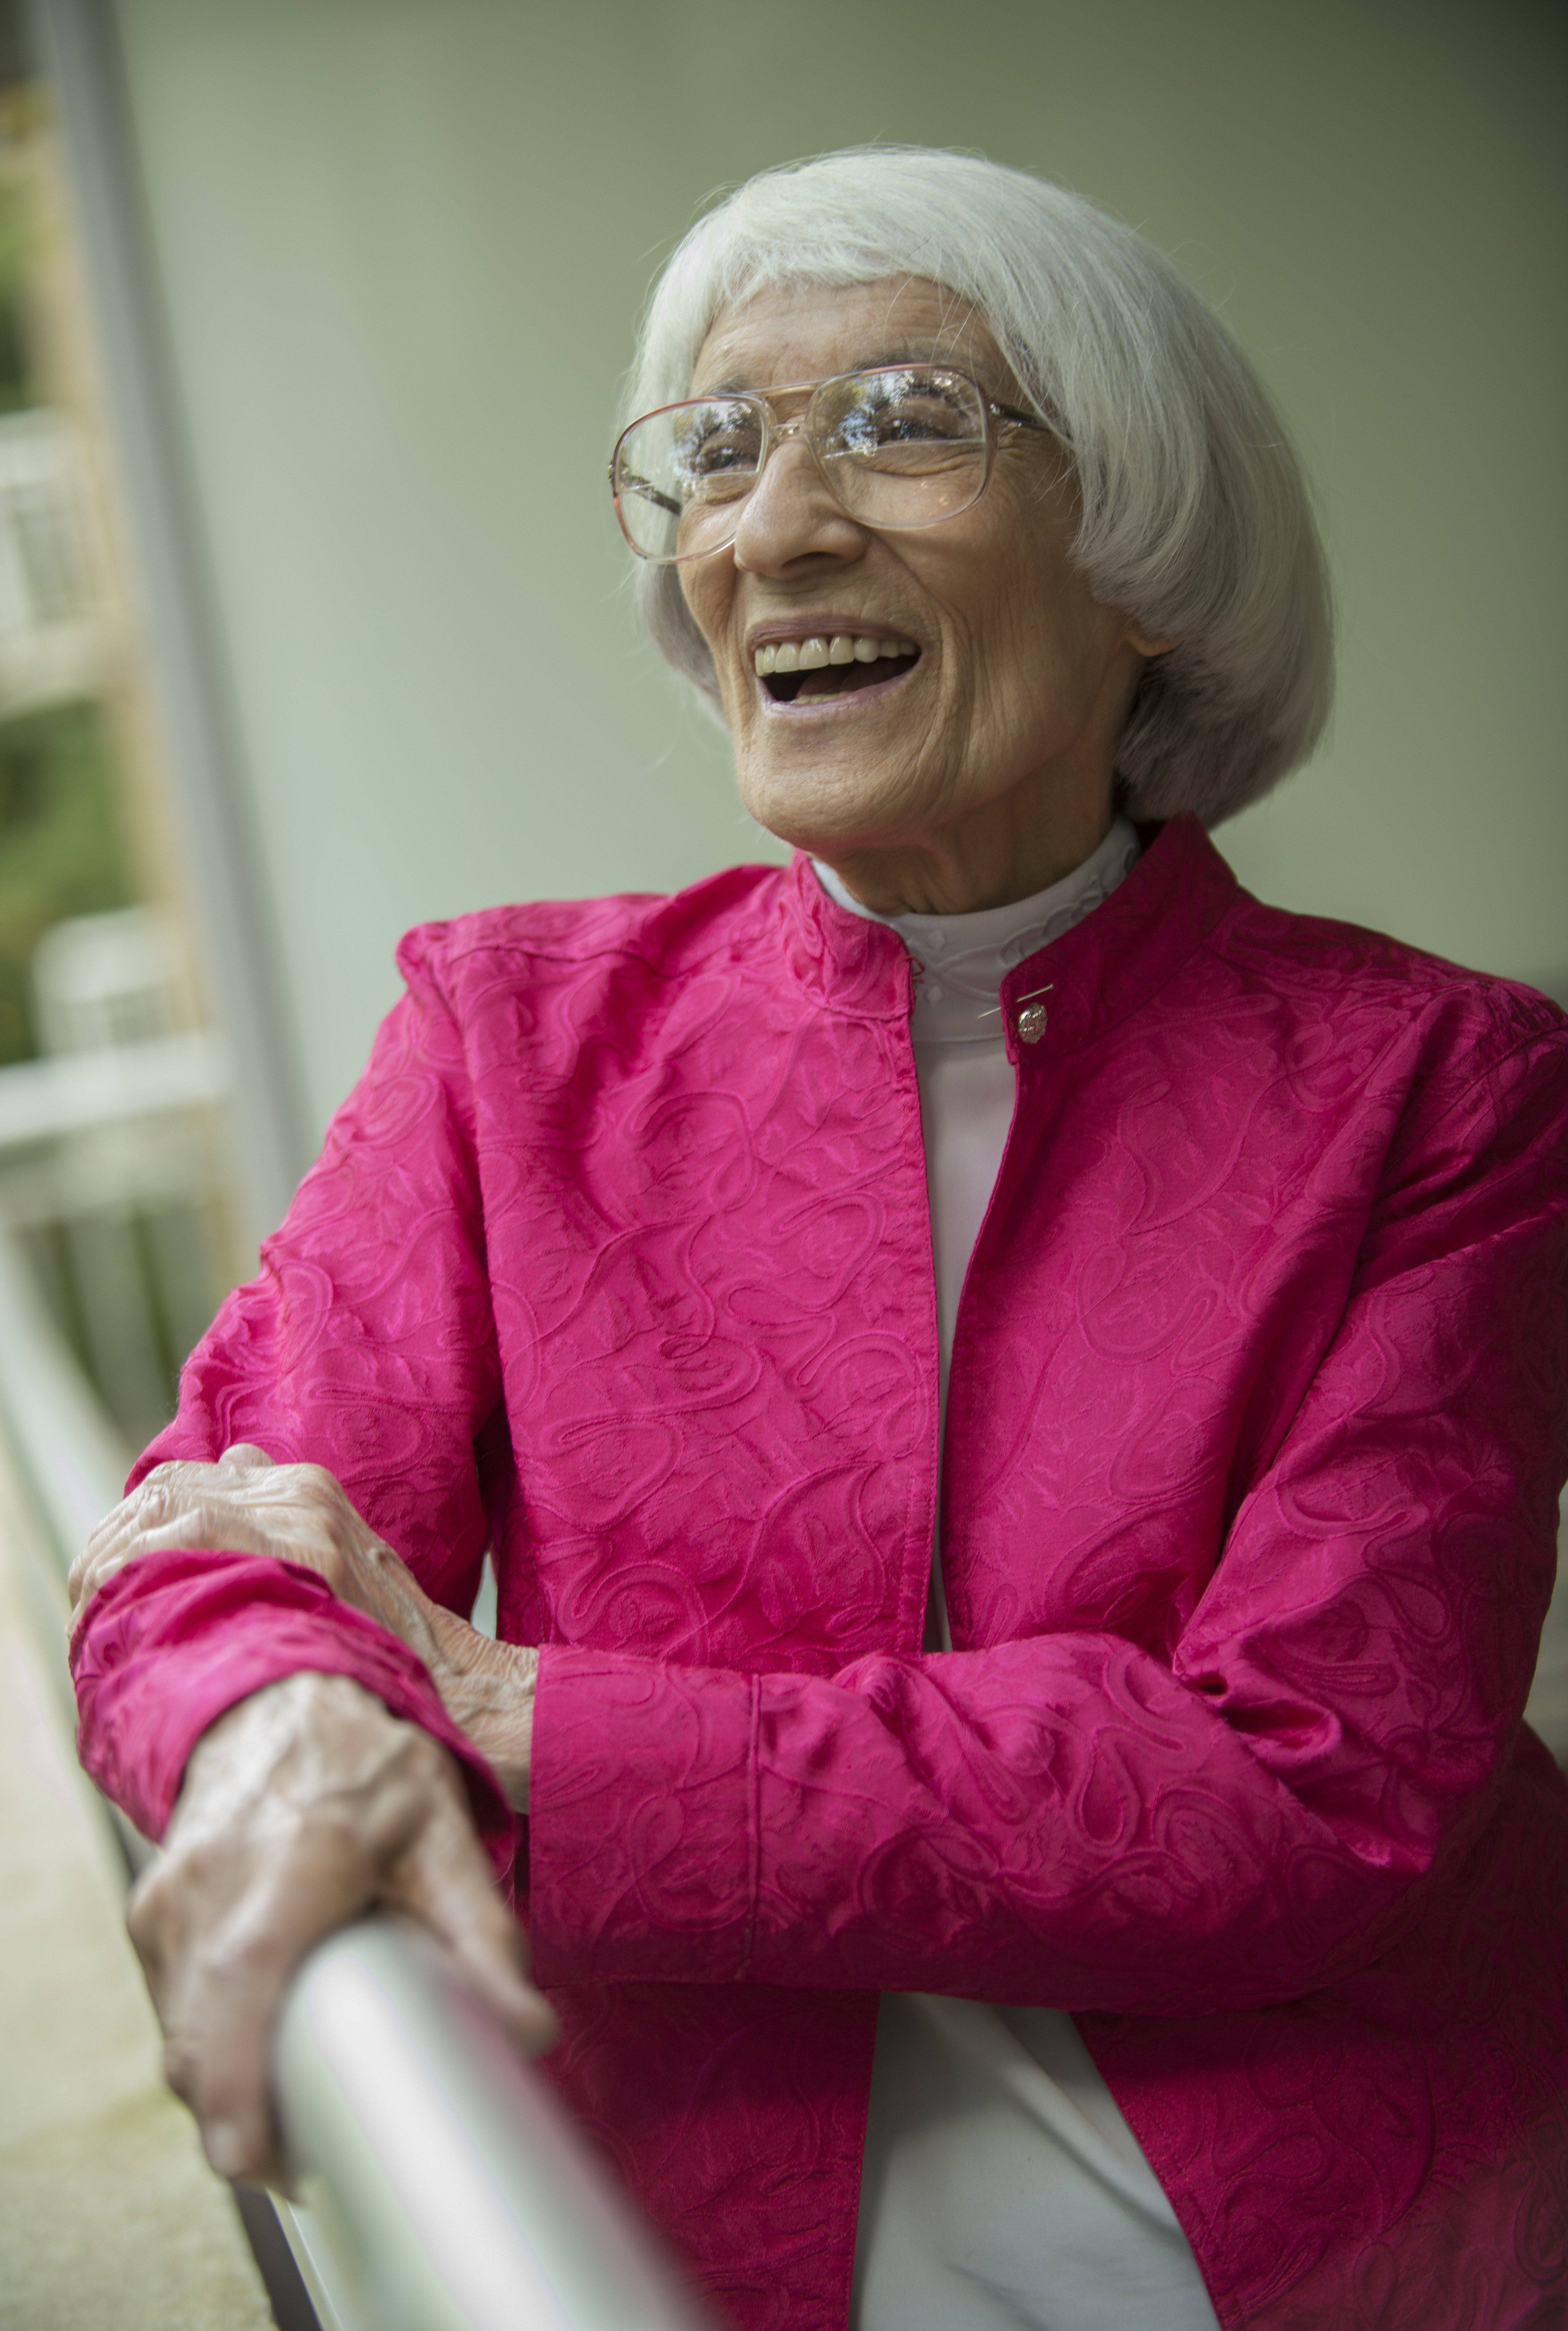 Dr. Bernice 'Bunny' Sandler was an integral part of the creation and passage of Title IX legislation addressing d